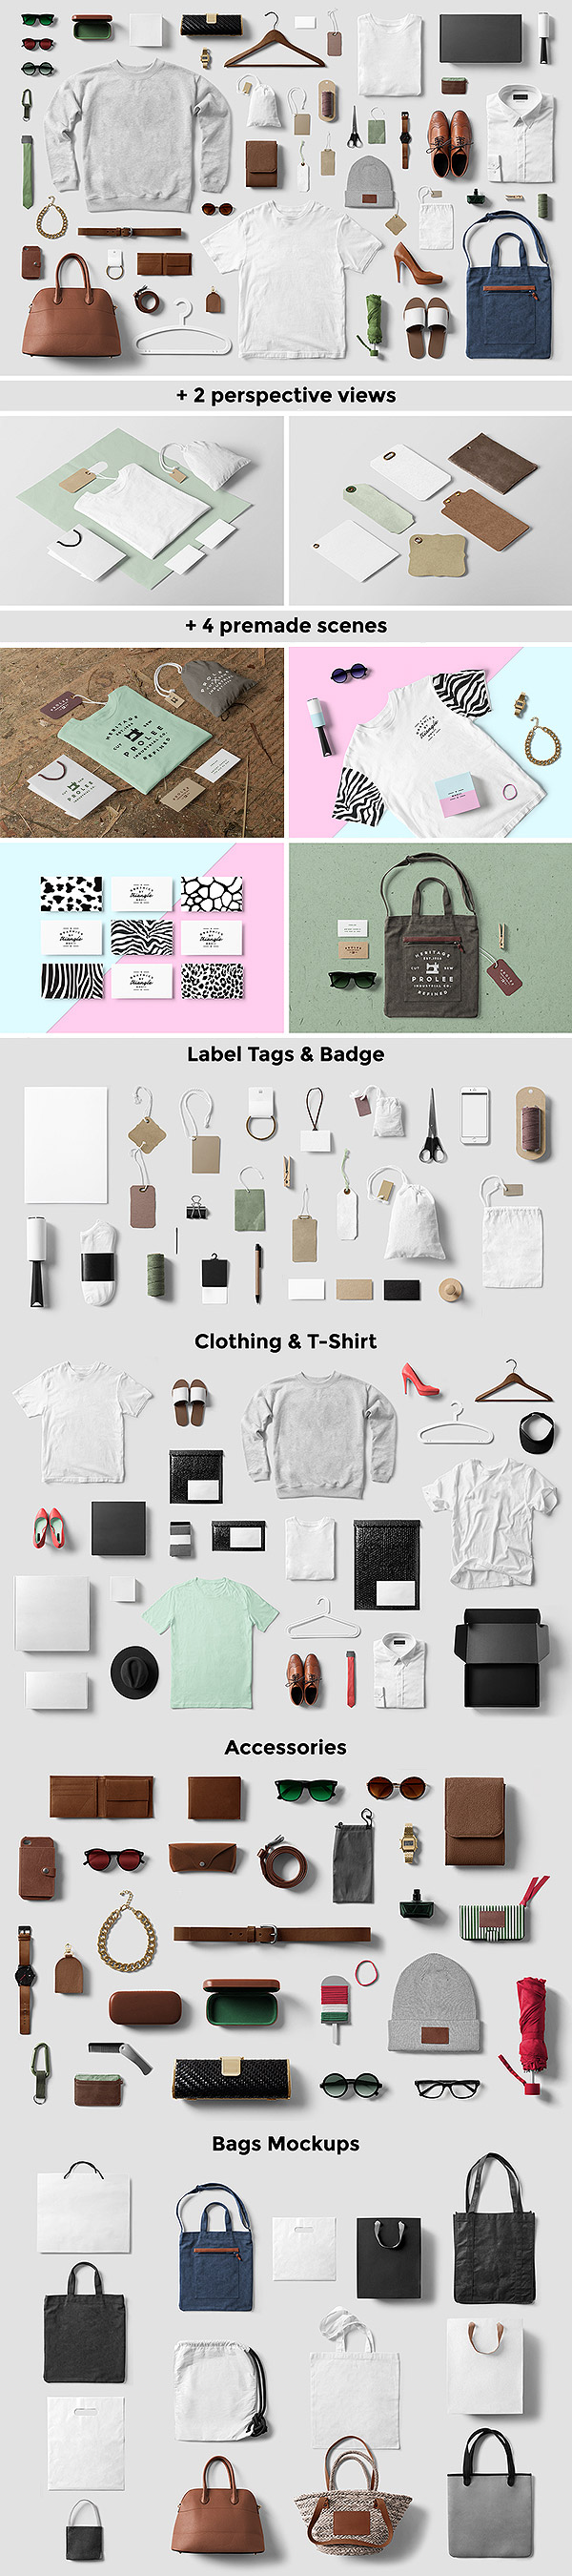 Clothing / Fashion / T-Shirt Mockup